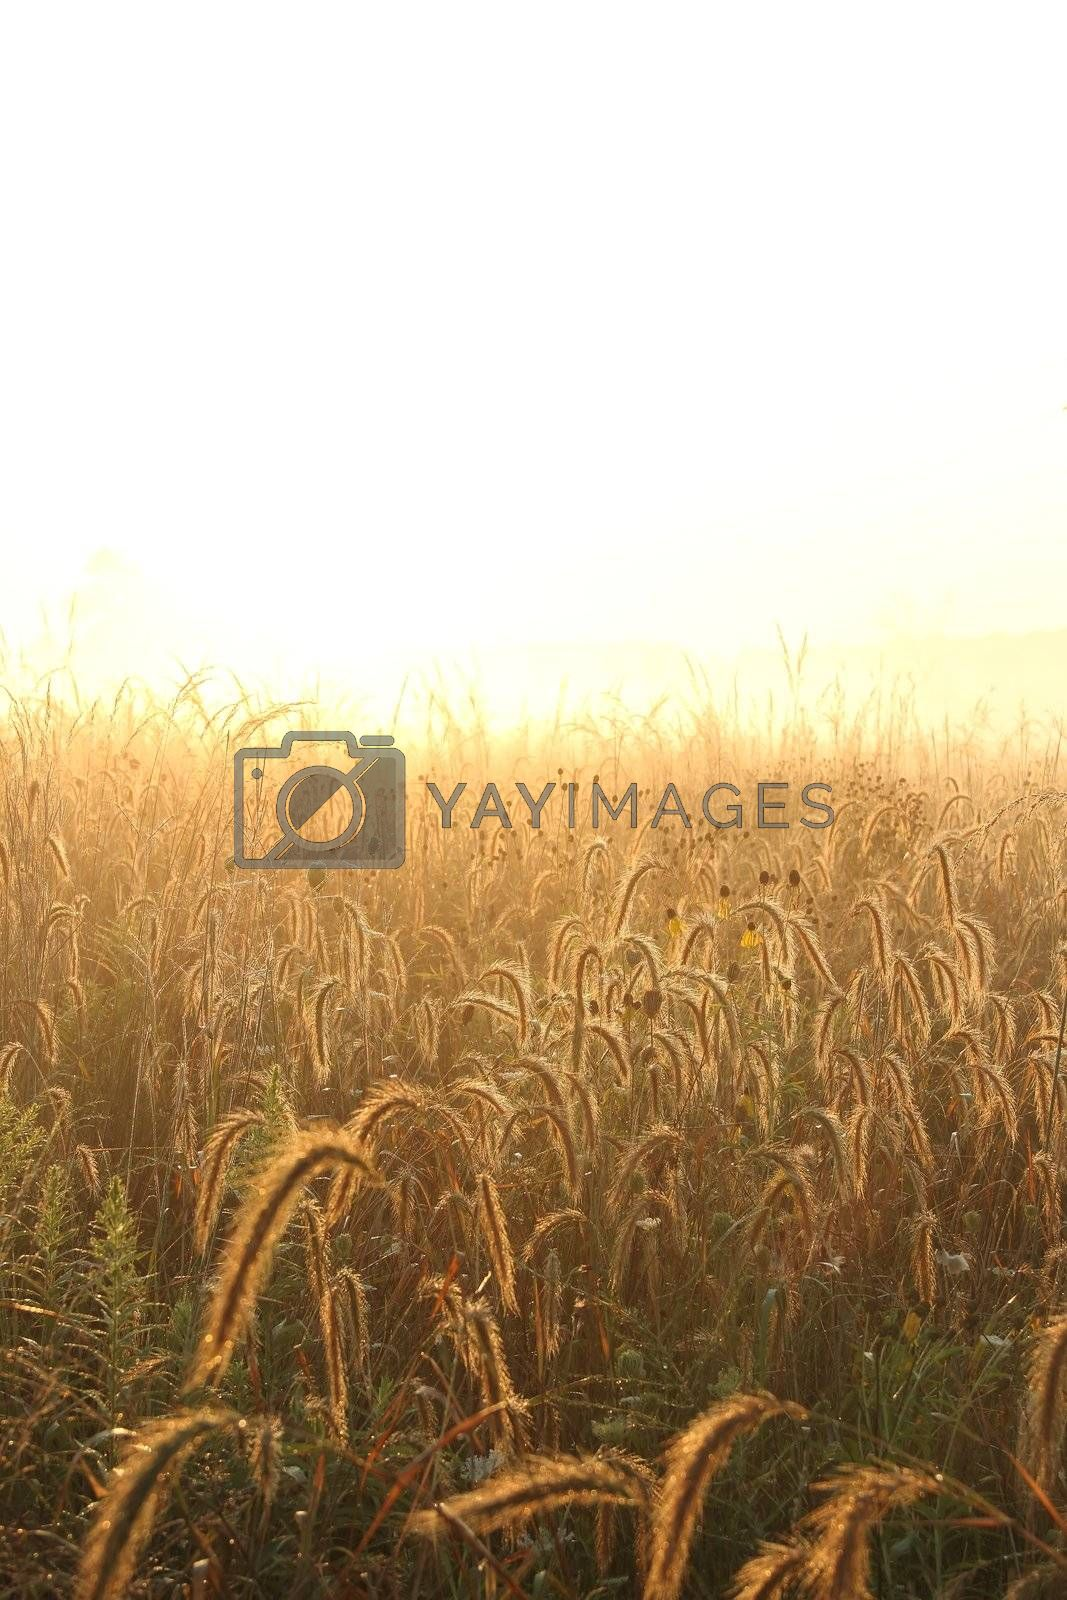 Royalty free image of Dew cover grass and neutral Background by jasony00